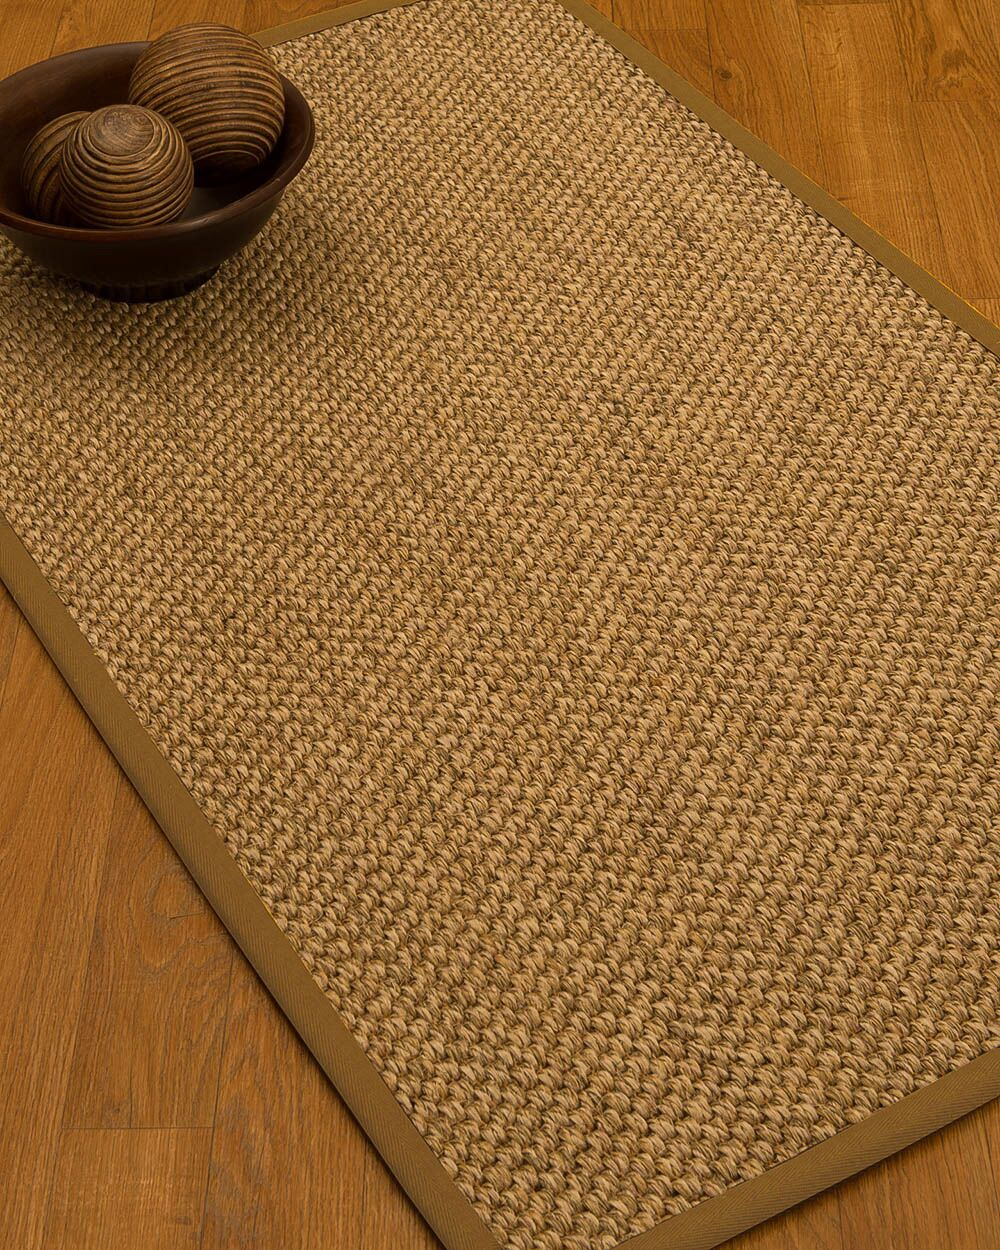 Heier Border Hand-Woven Brown Area Rug Rug Size: Rectangle 4' x 6', Rug Pad Included: Yes